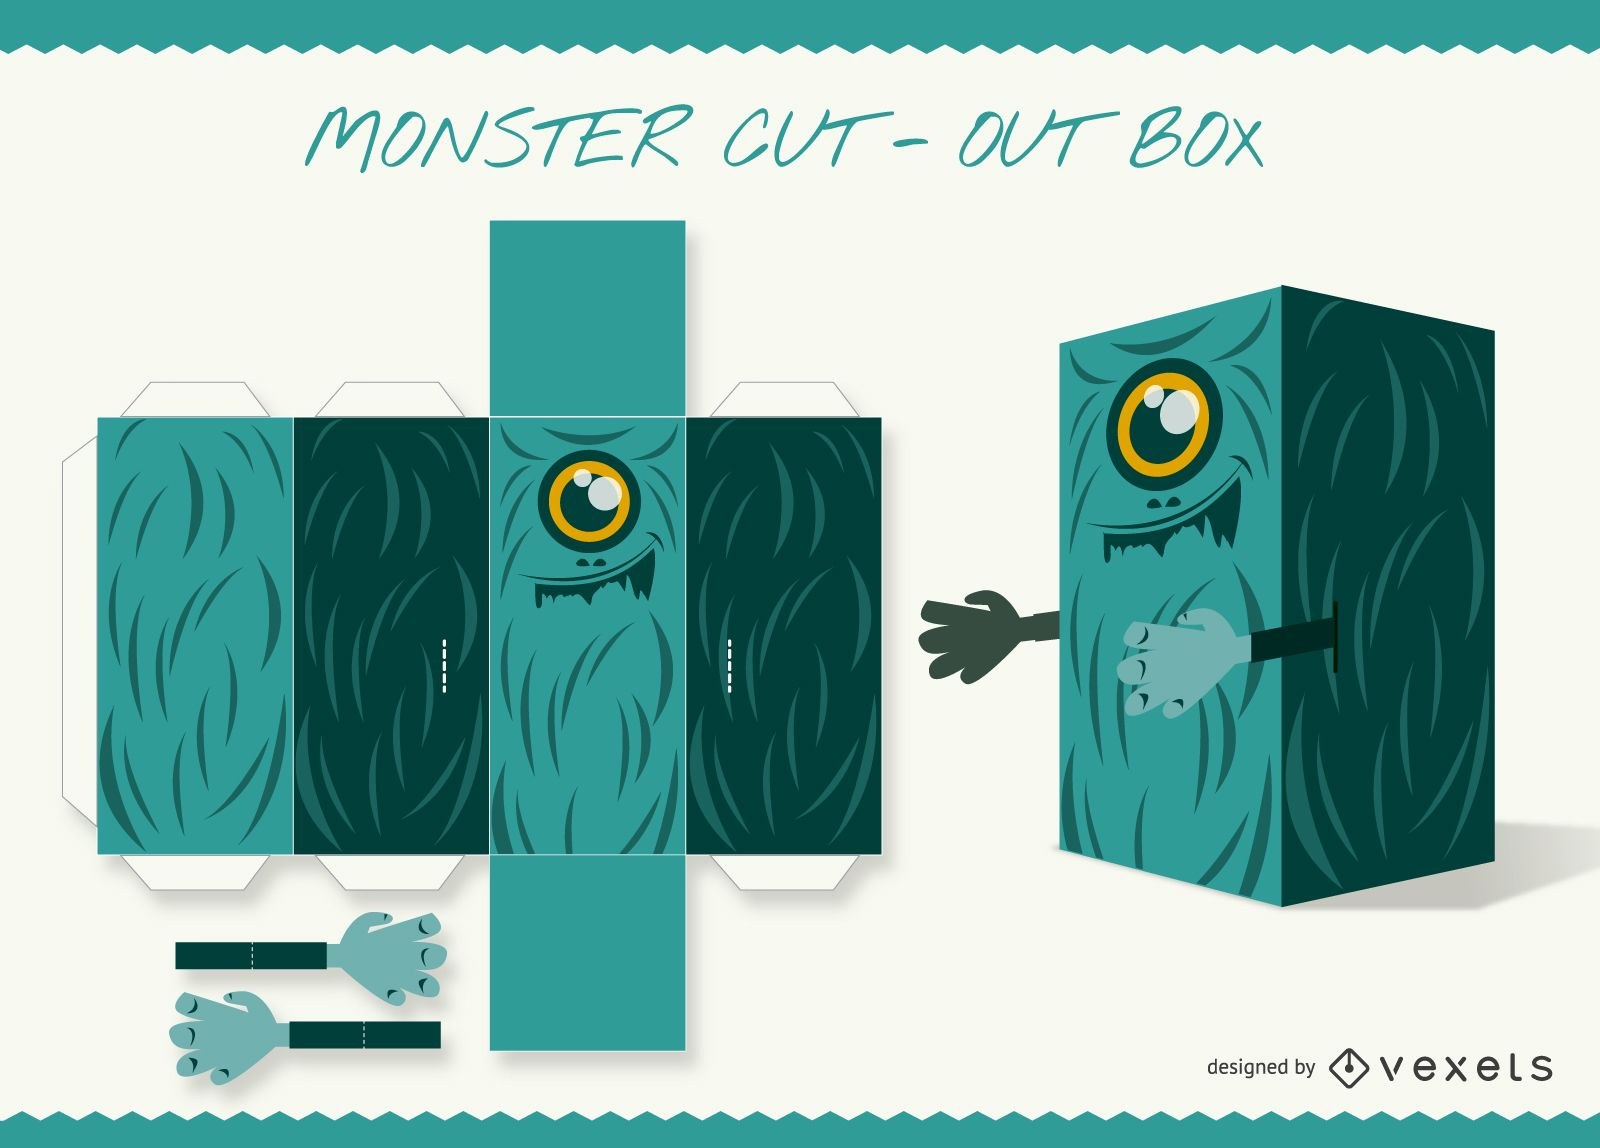 Monster cut-out box paper craft